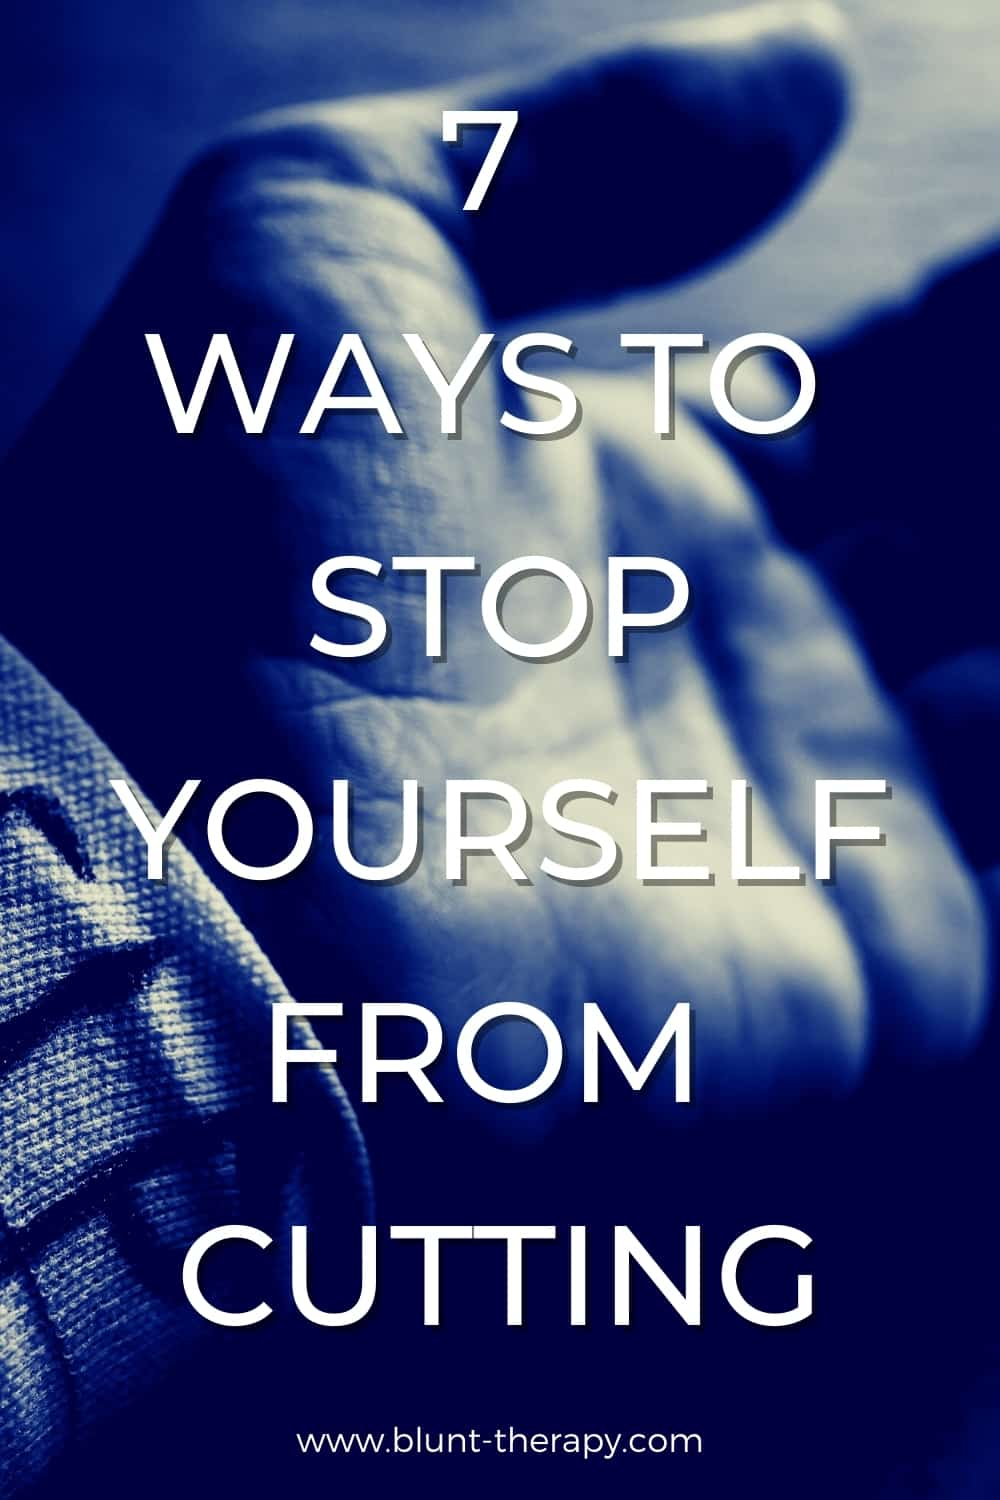 How To Stop Cutting: 7 Self-Harm Reduction Techniques That Actually Work